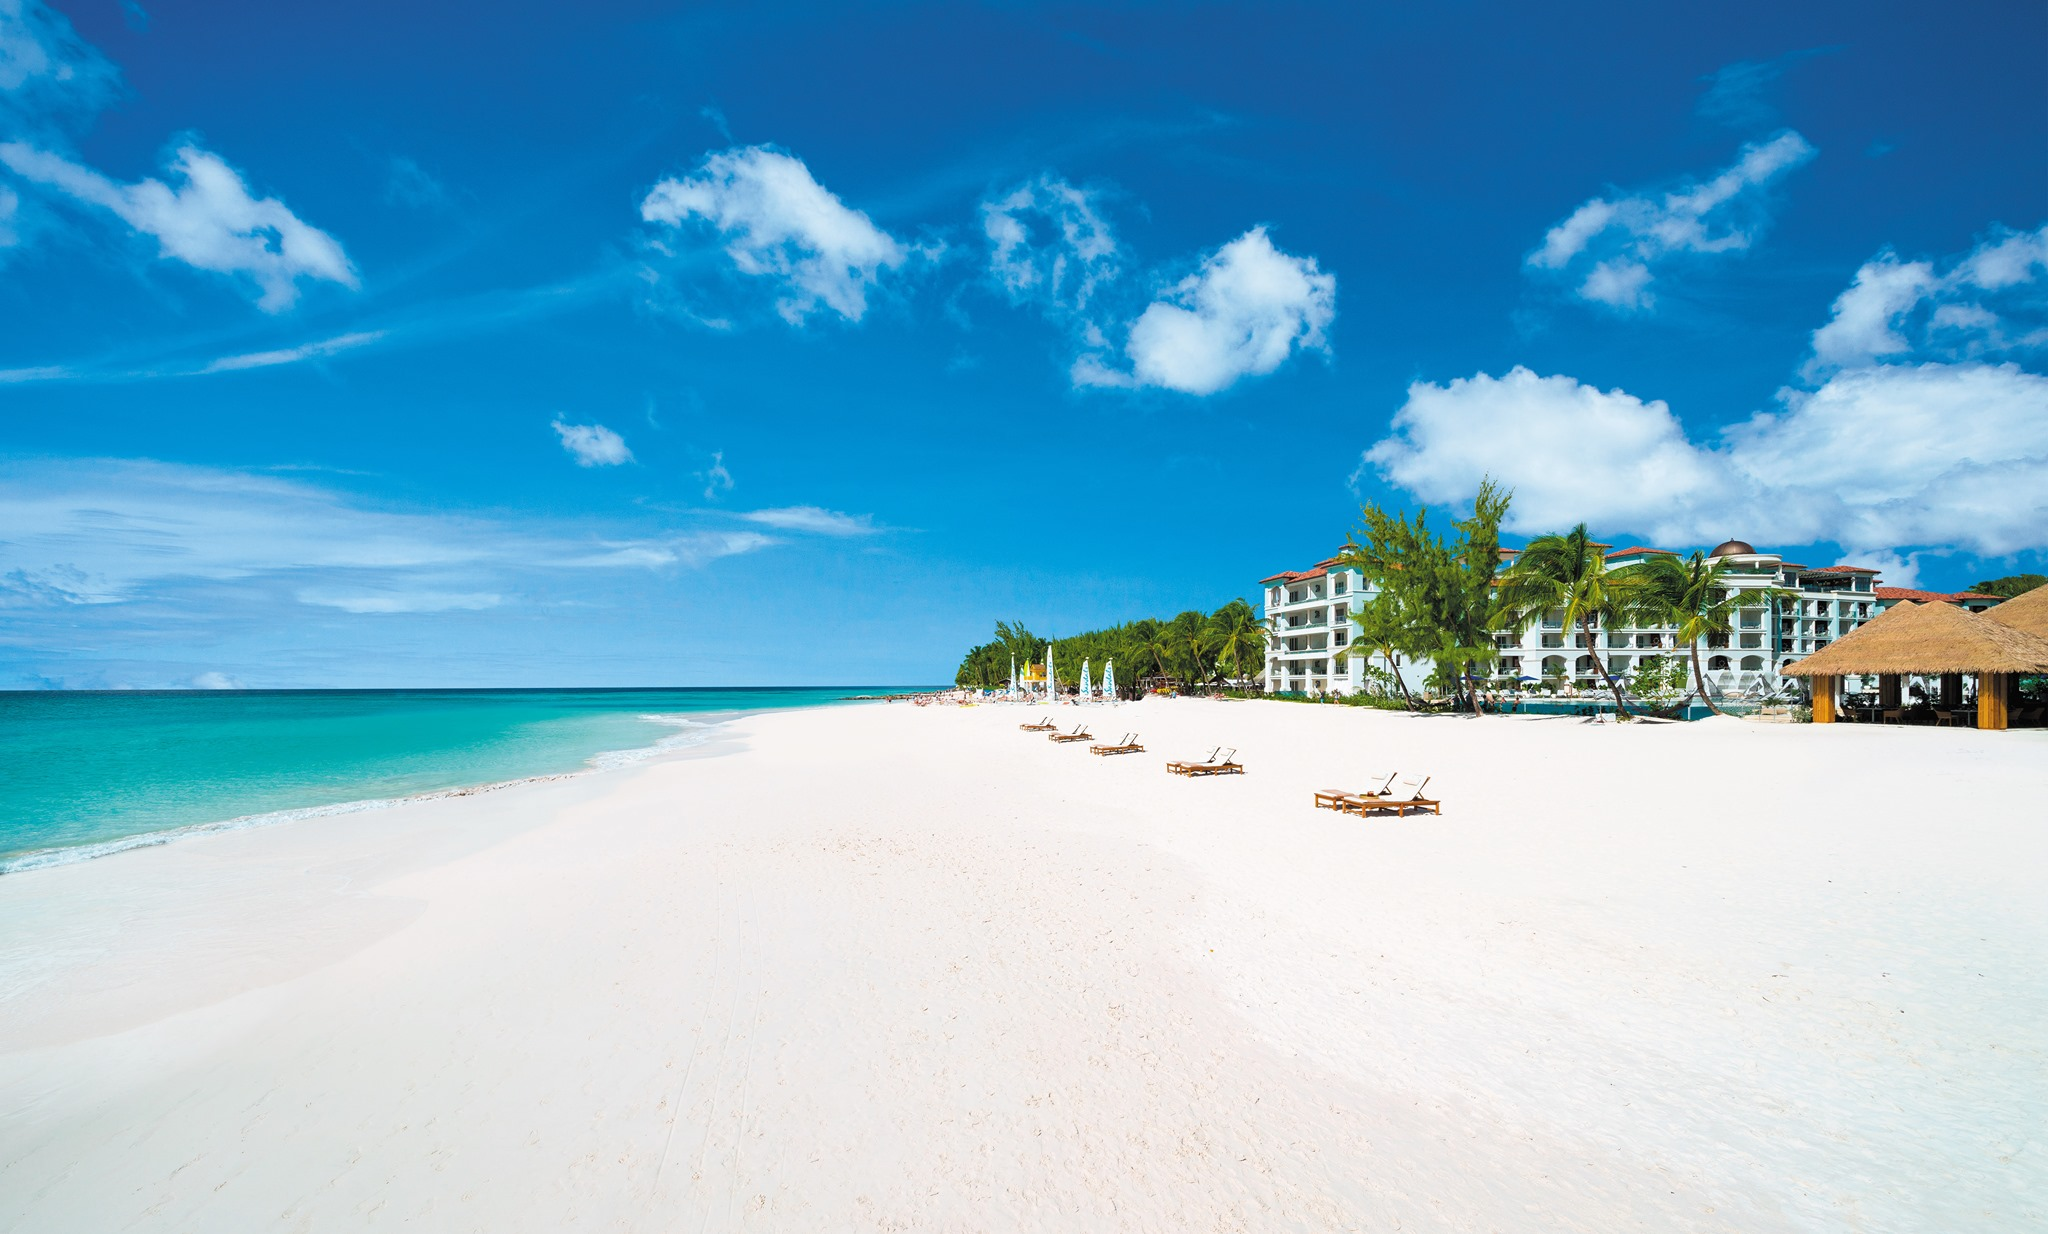 SANDALS BARBADOS BUSINESS CLASS DEAL